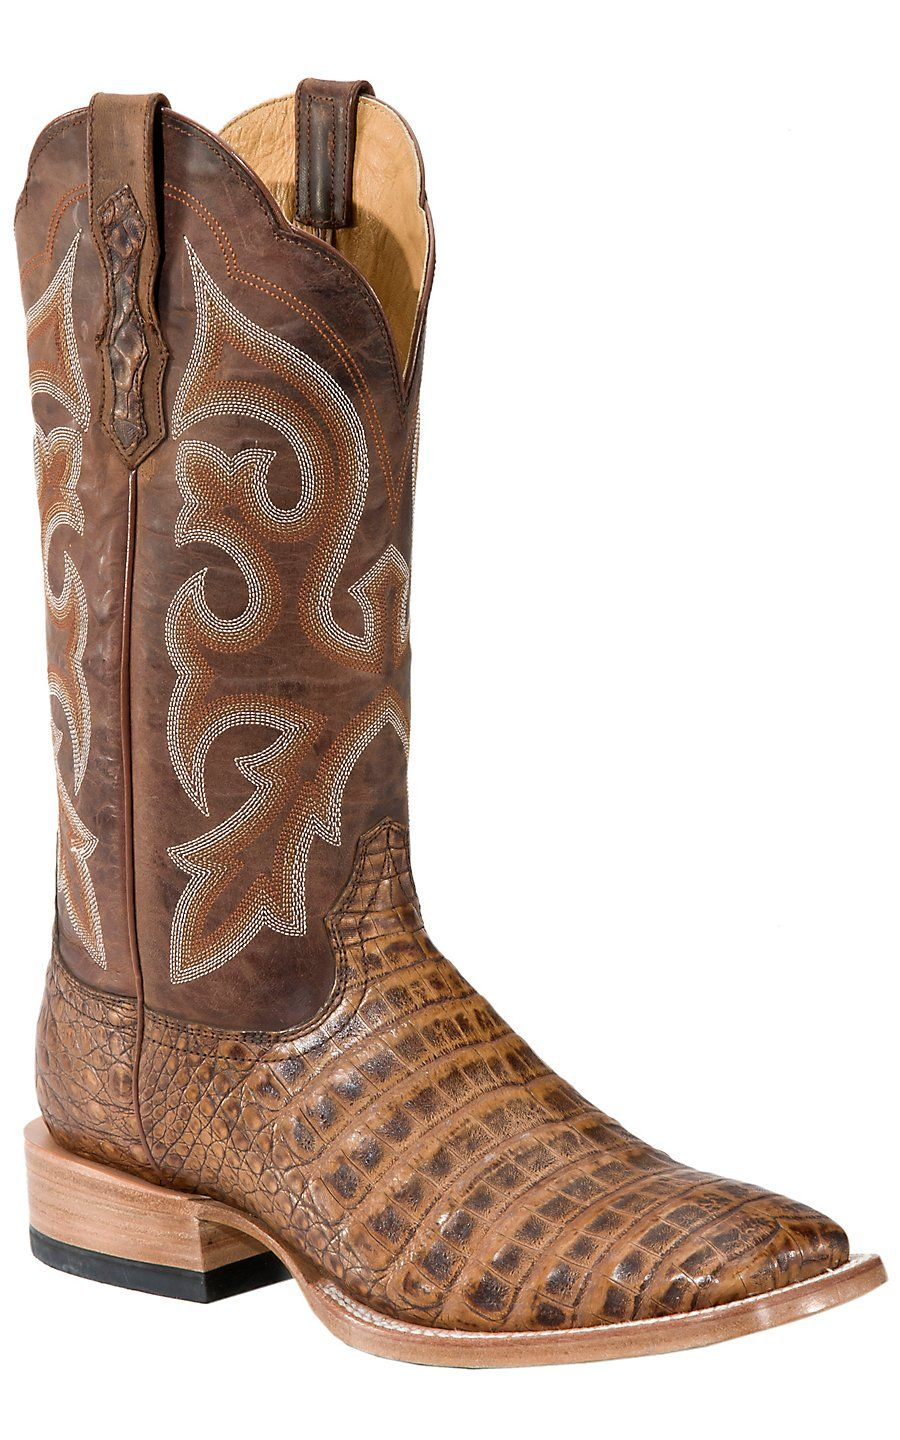 eacab32cab2 Ariat Latigo Men's Antique Pecan Brown Caiman Gator Belly Exotic ...